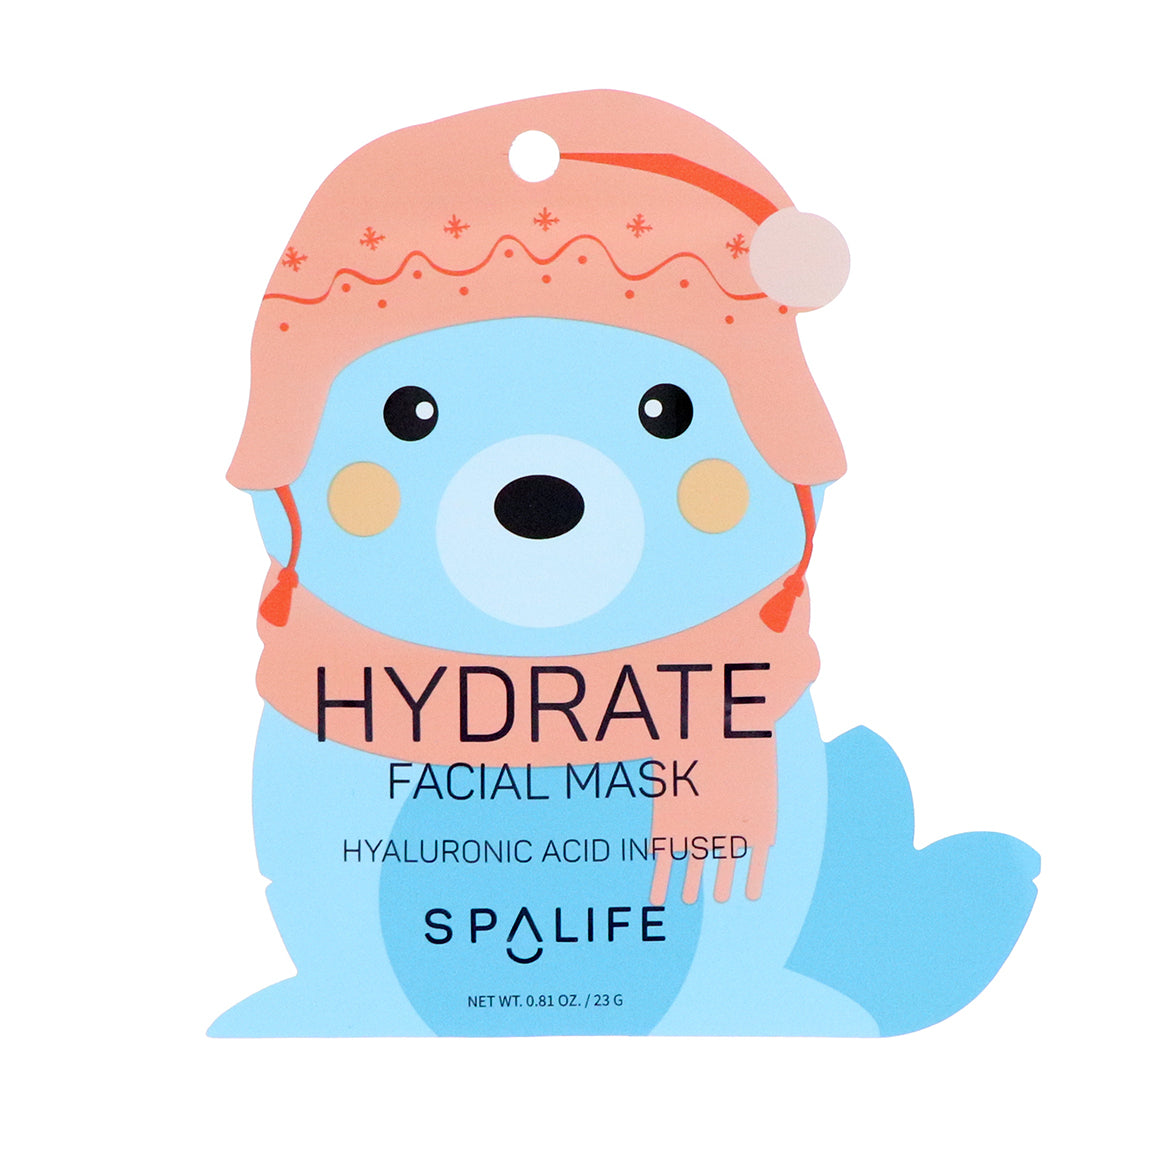 HYDRATE - Hyaluronic Acid Facial Mask